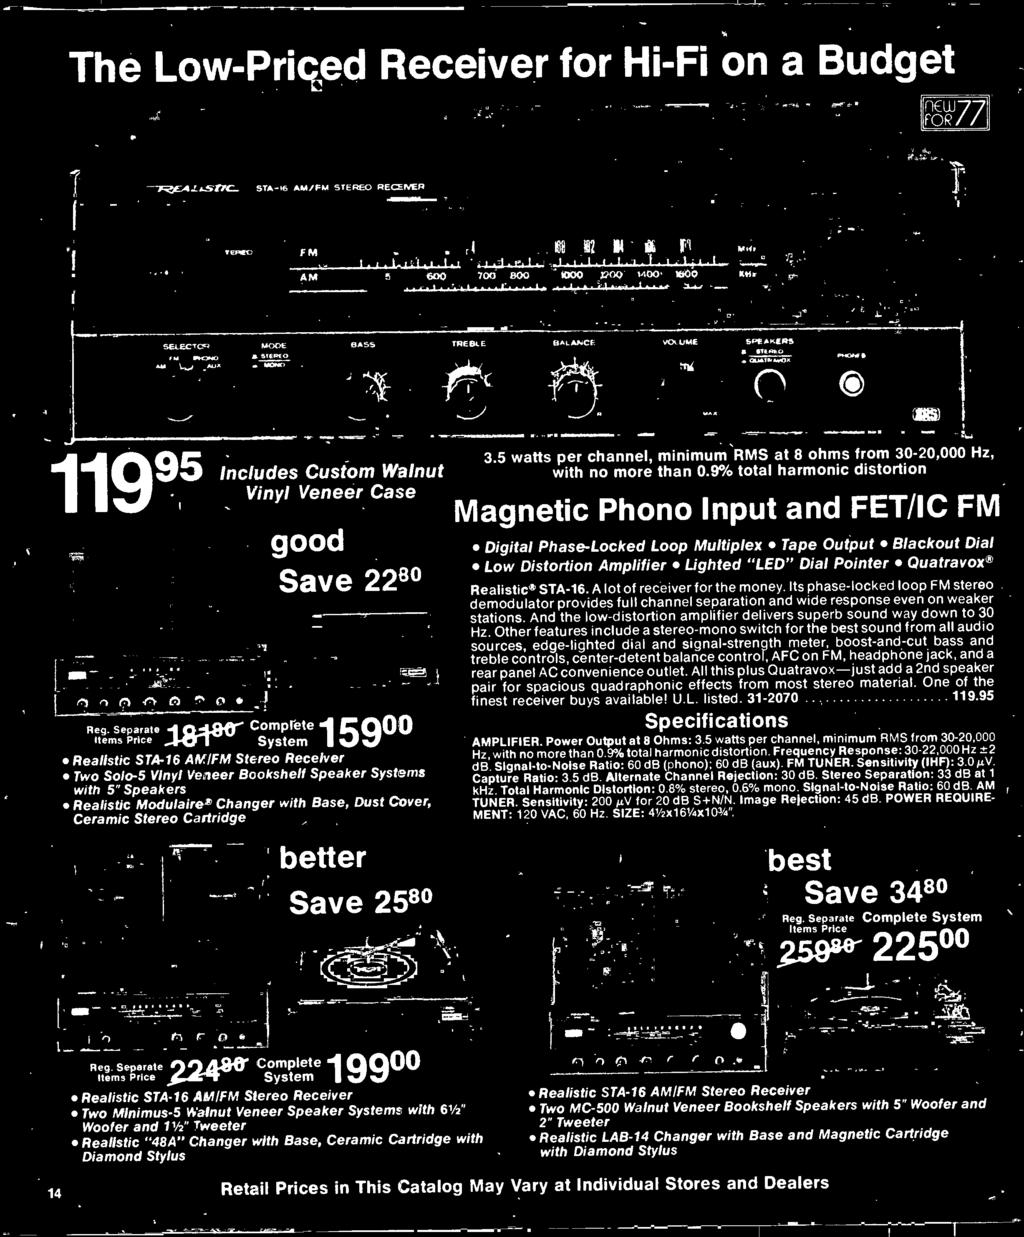 1977 Electronics Catalog Pdf Fm Stereo Demodulator Of Rf Circuit Using Ic Lm1800 Separate Complete Items Price S Stem Realistic Sta 16 Am Receiver Two